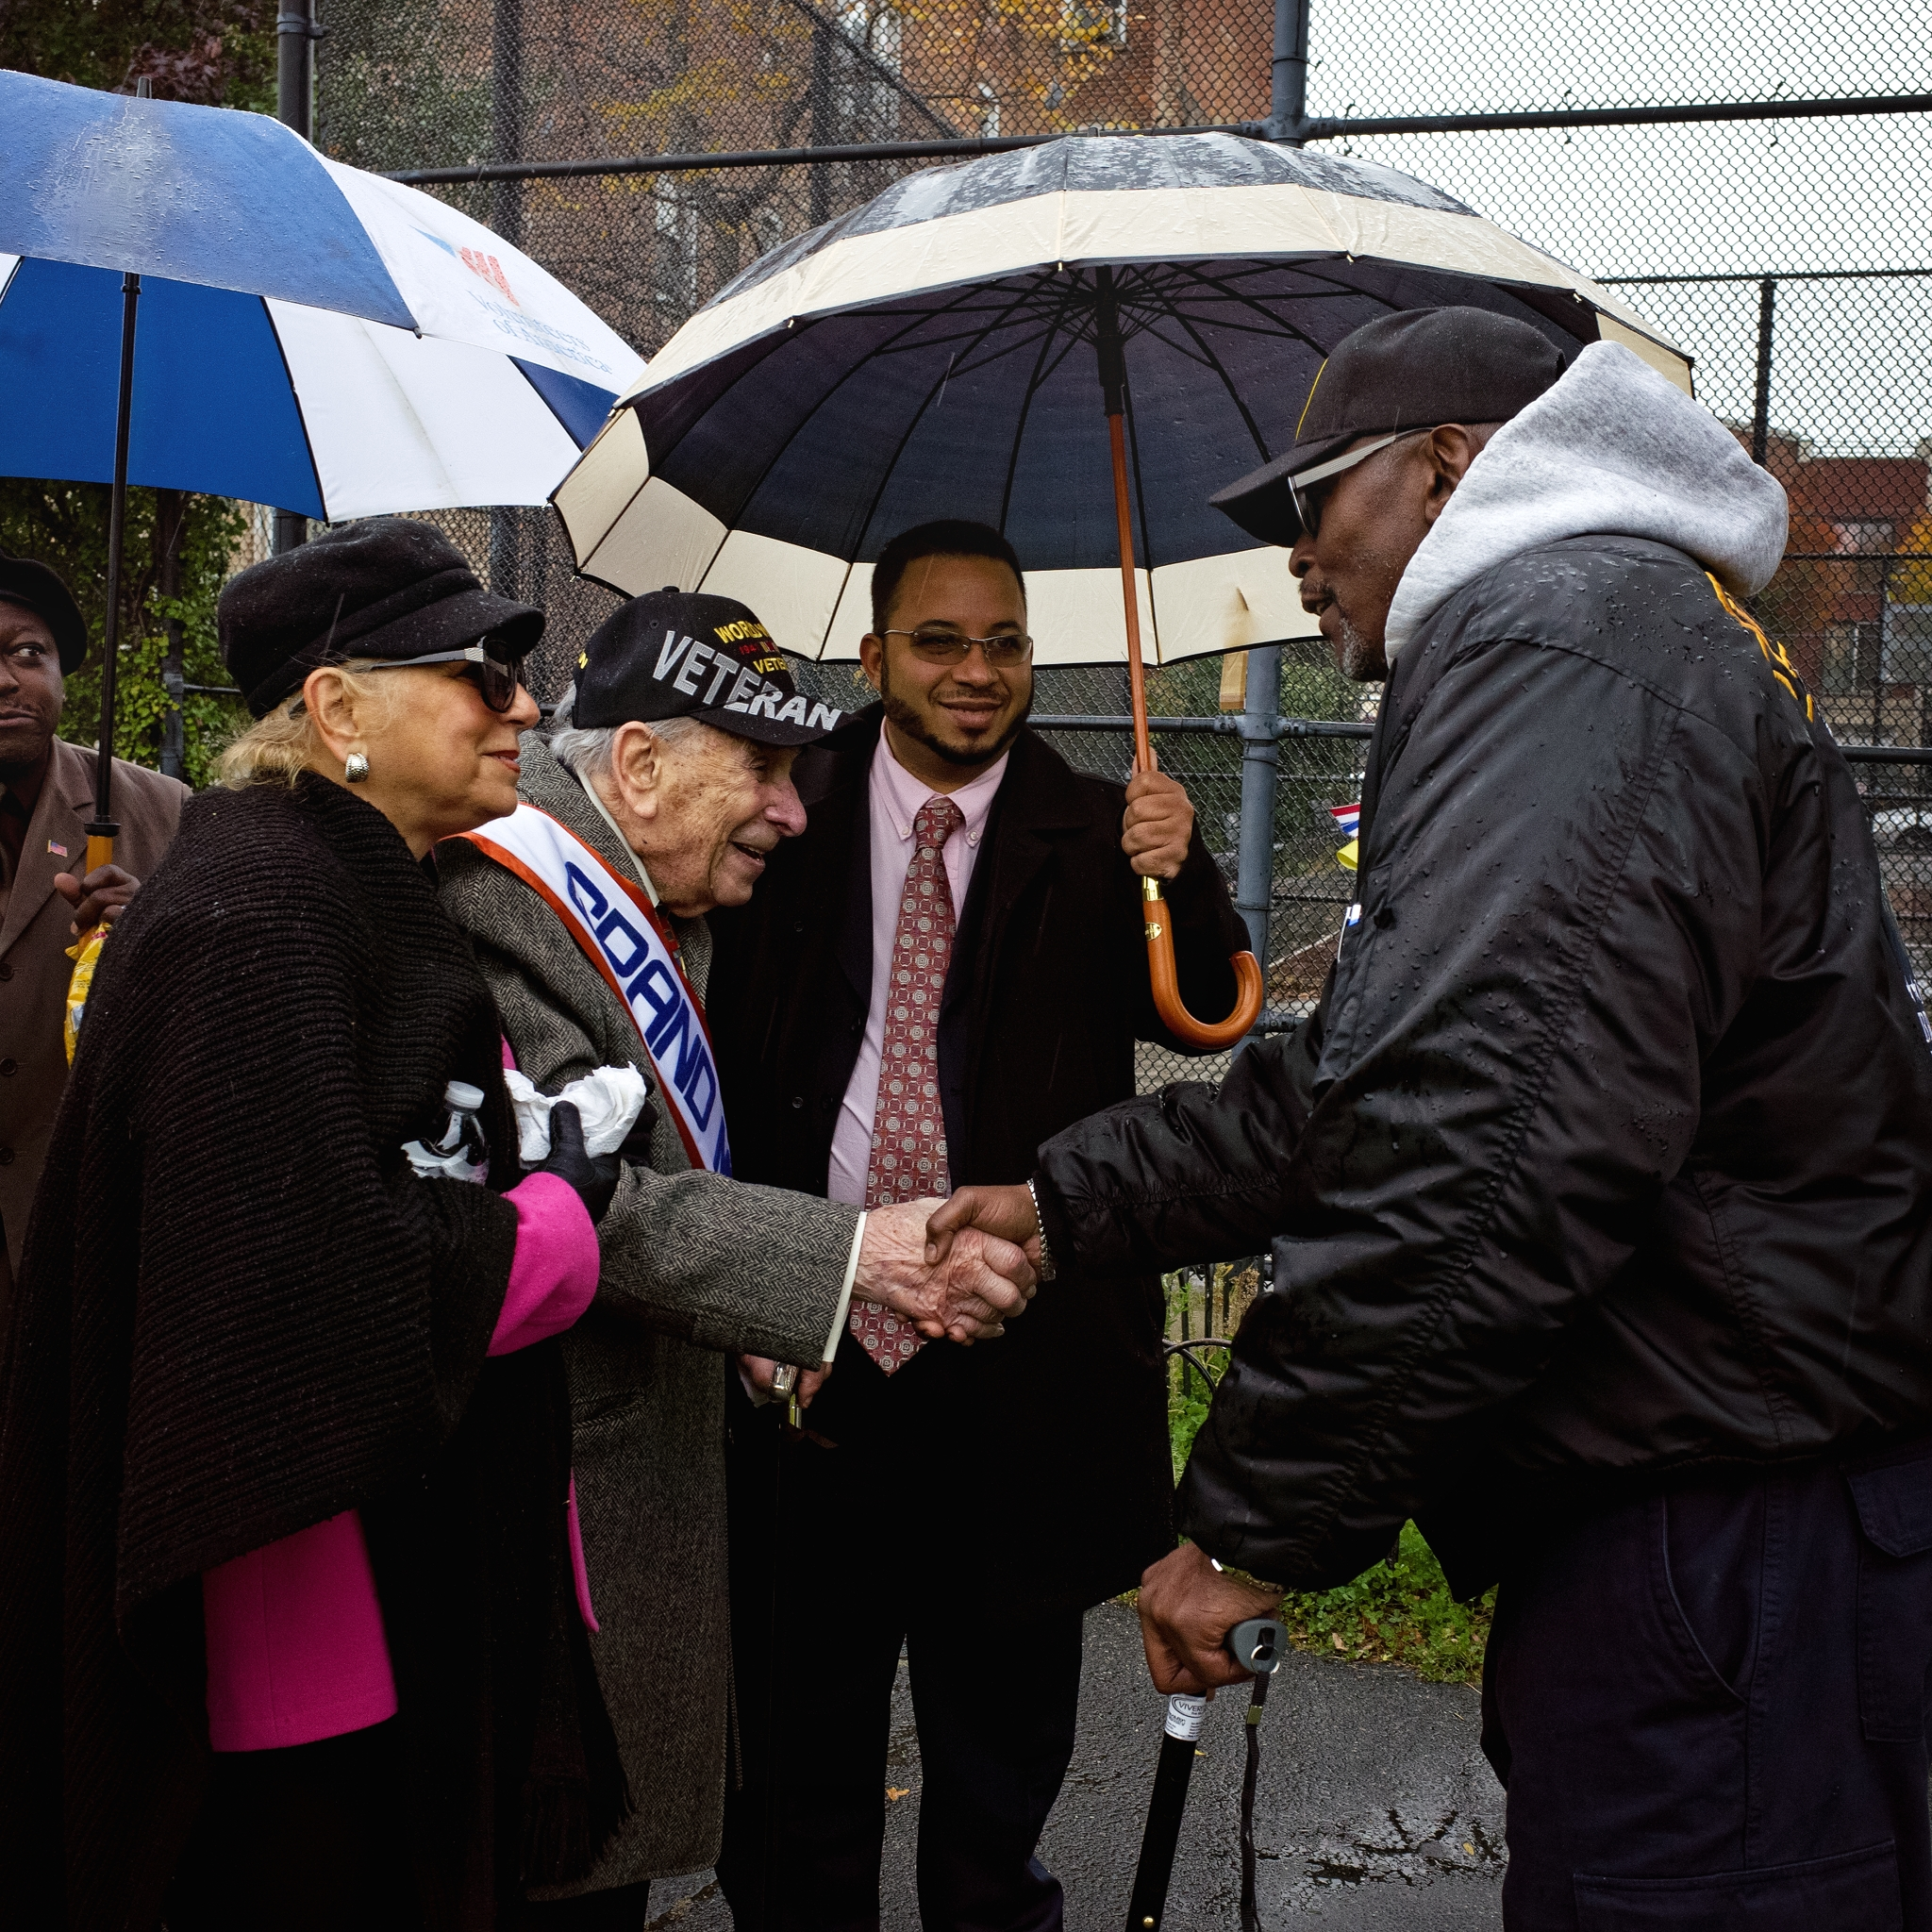 Joe Binder, a 104 year-old World War II veteran, greets other war vets during the and the 2014 Bronx Veterans Day Parade. He was the Grand Marshall.